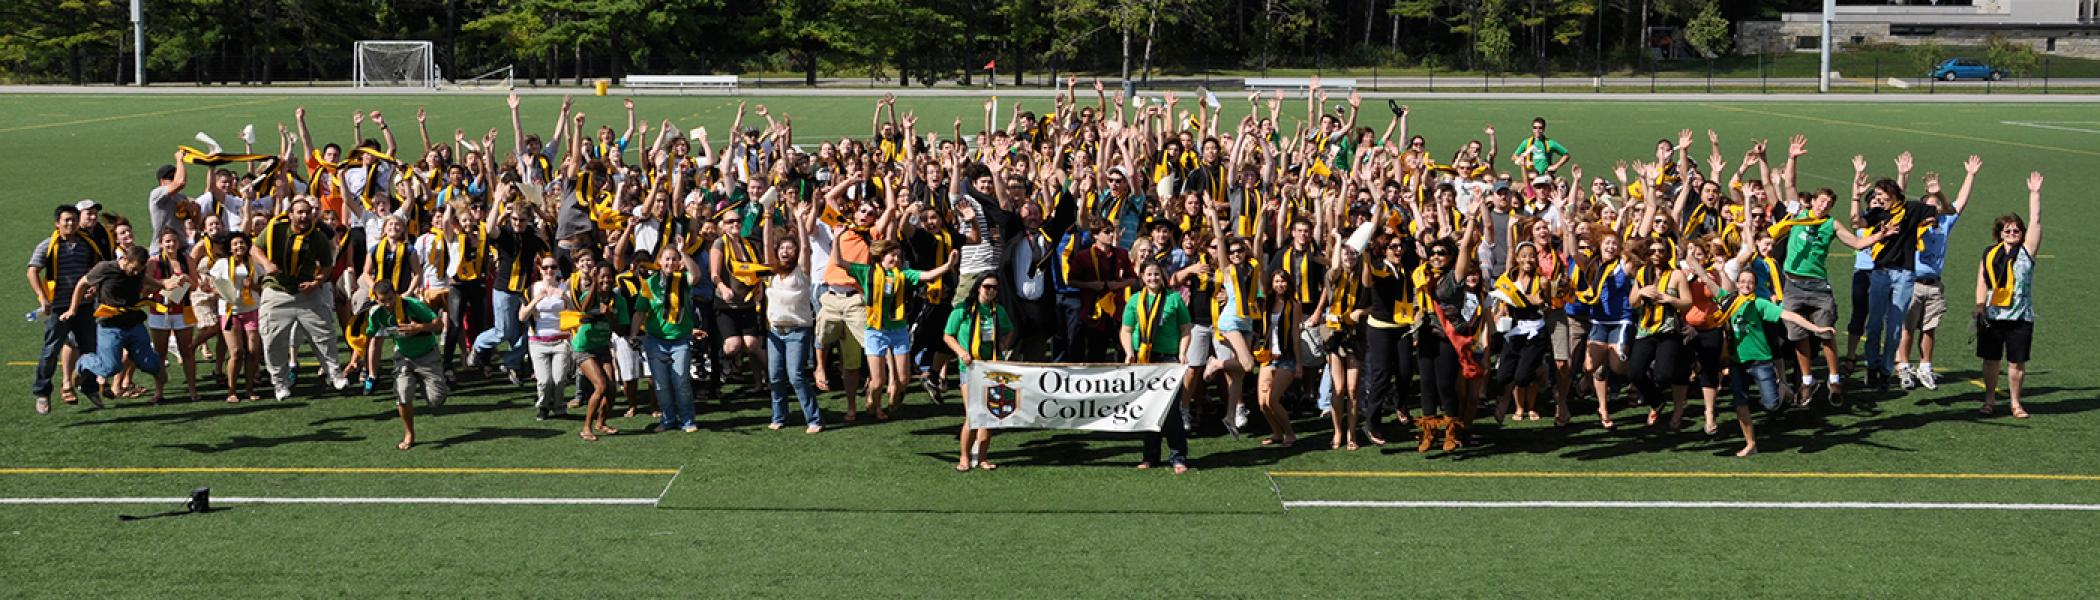 All the occupants fromt he Otonabee residence huddle into a group on the athletics filed for a group photo in the afternoon